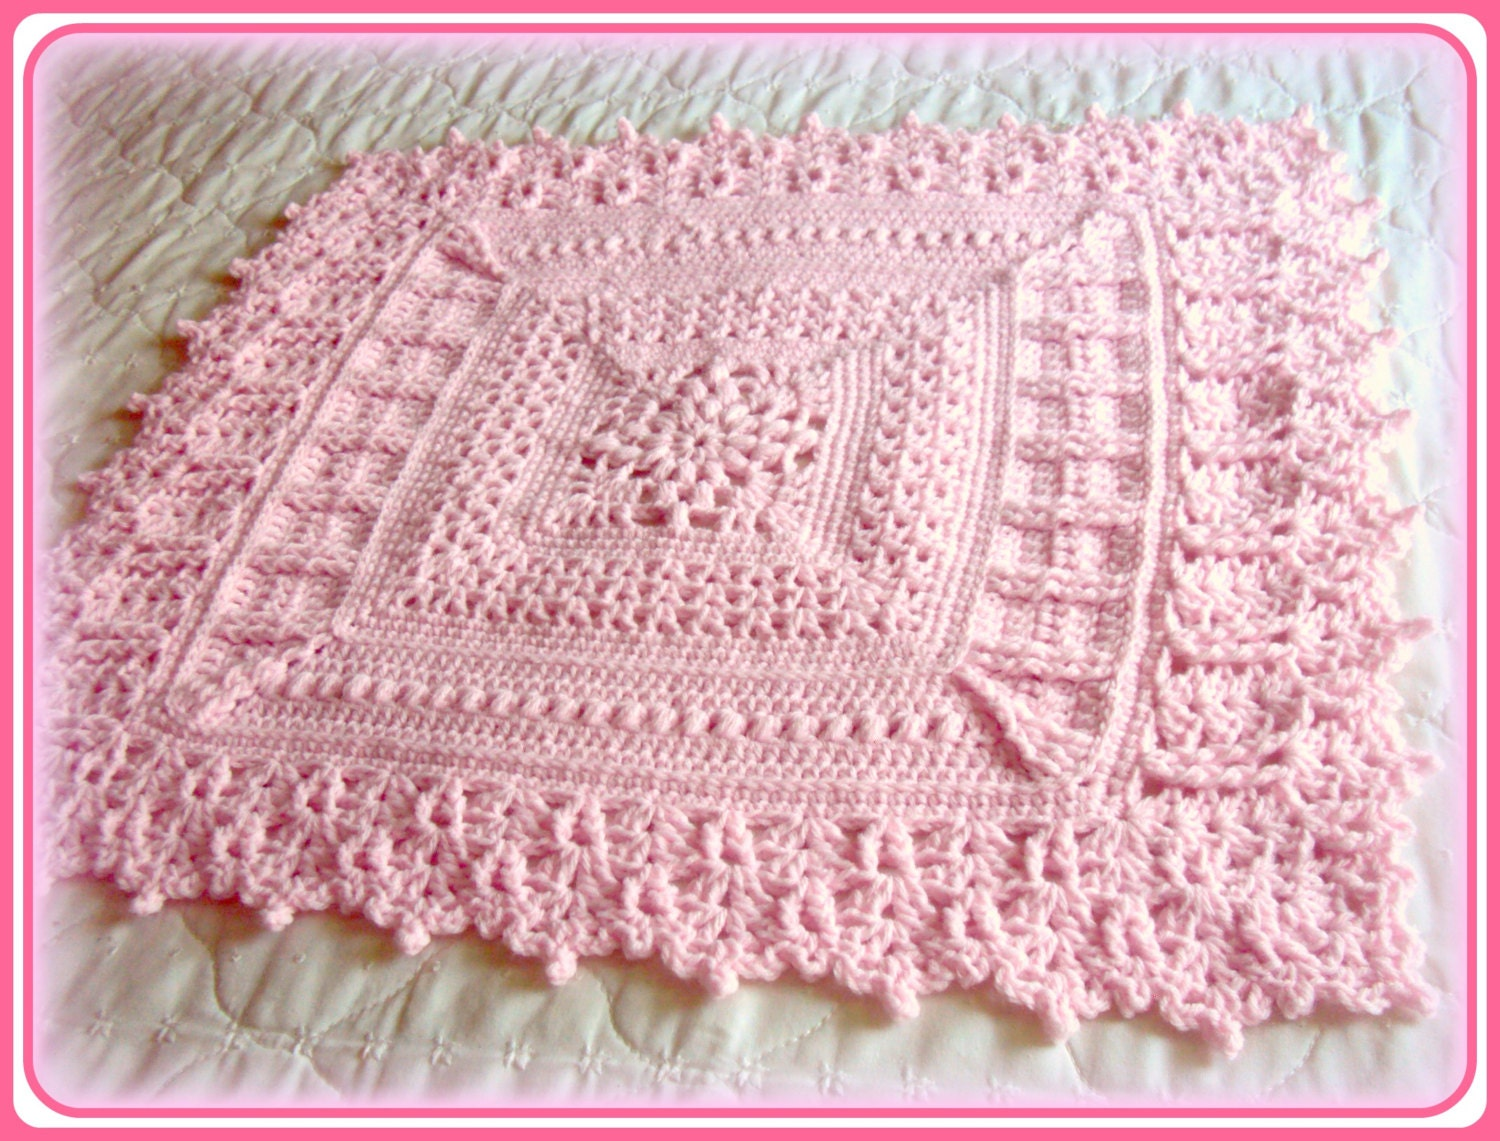 Request a custom order and have something made just for you Crochet Baby Blanket Design